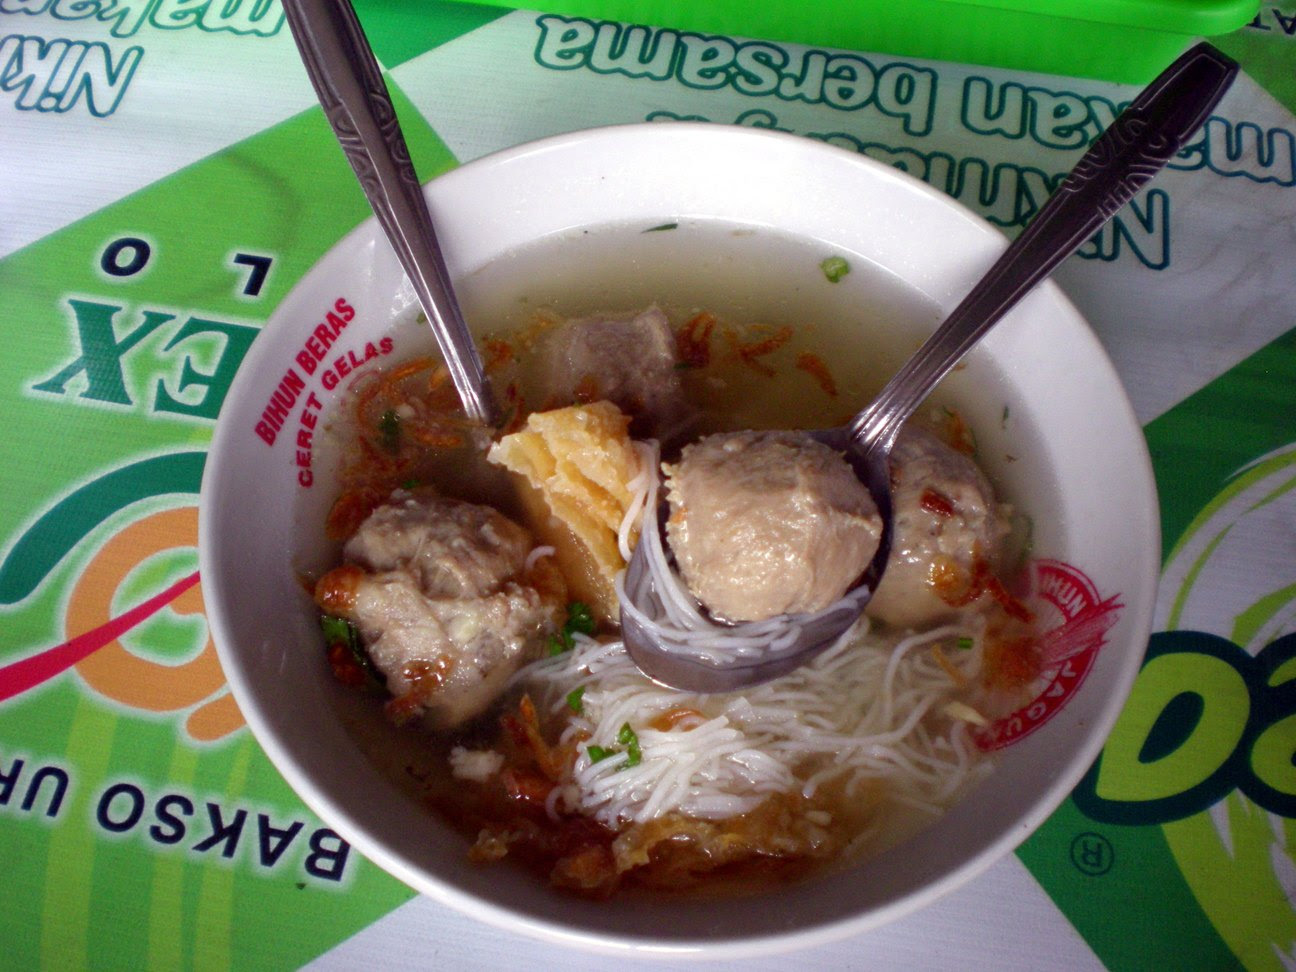 http://pakdearie.files.wordpress.com/2013/01/bakso2balex.jpg